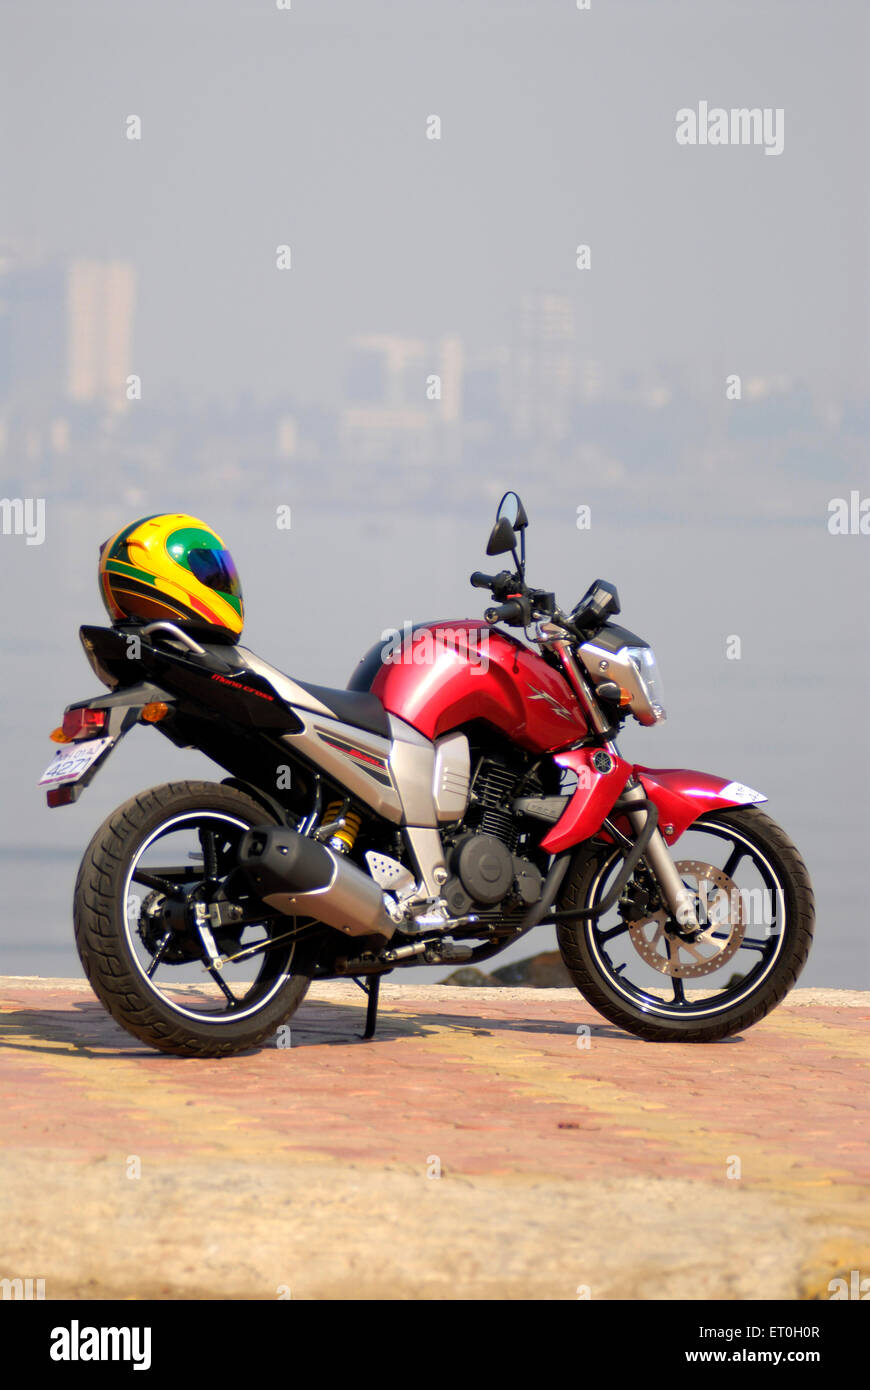 Motorcycle yamaha FZ red coloured 150cc sport bike with colourful helmet - Stock Image